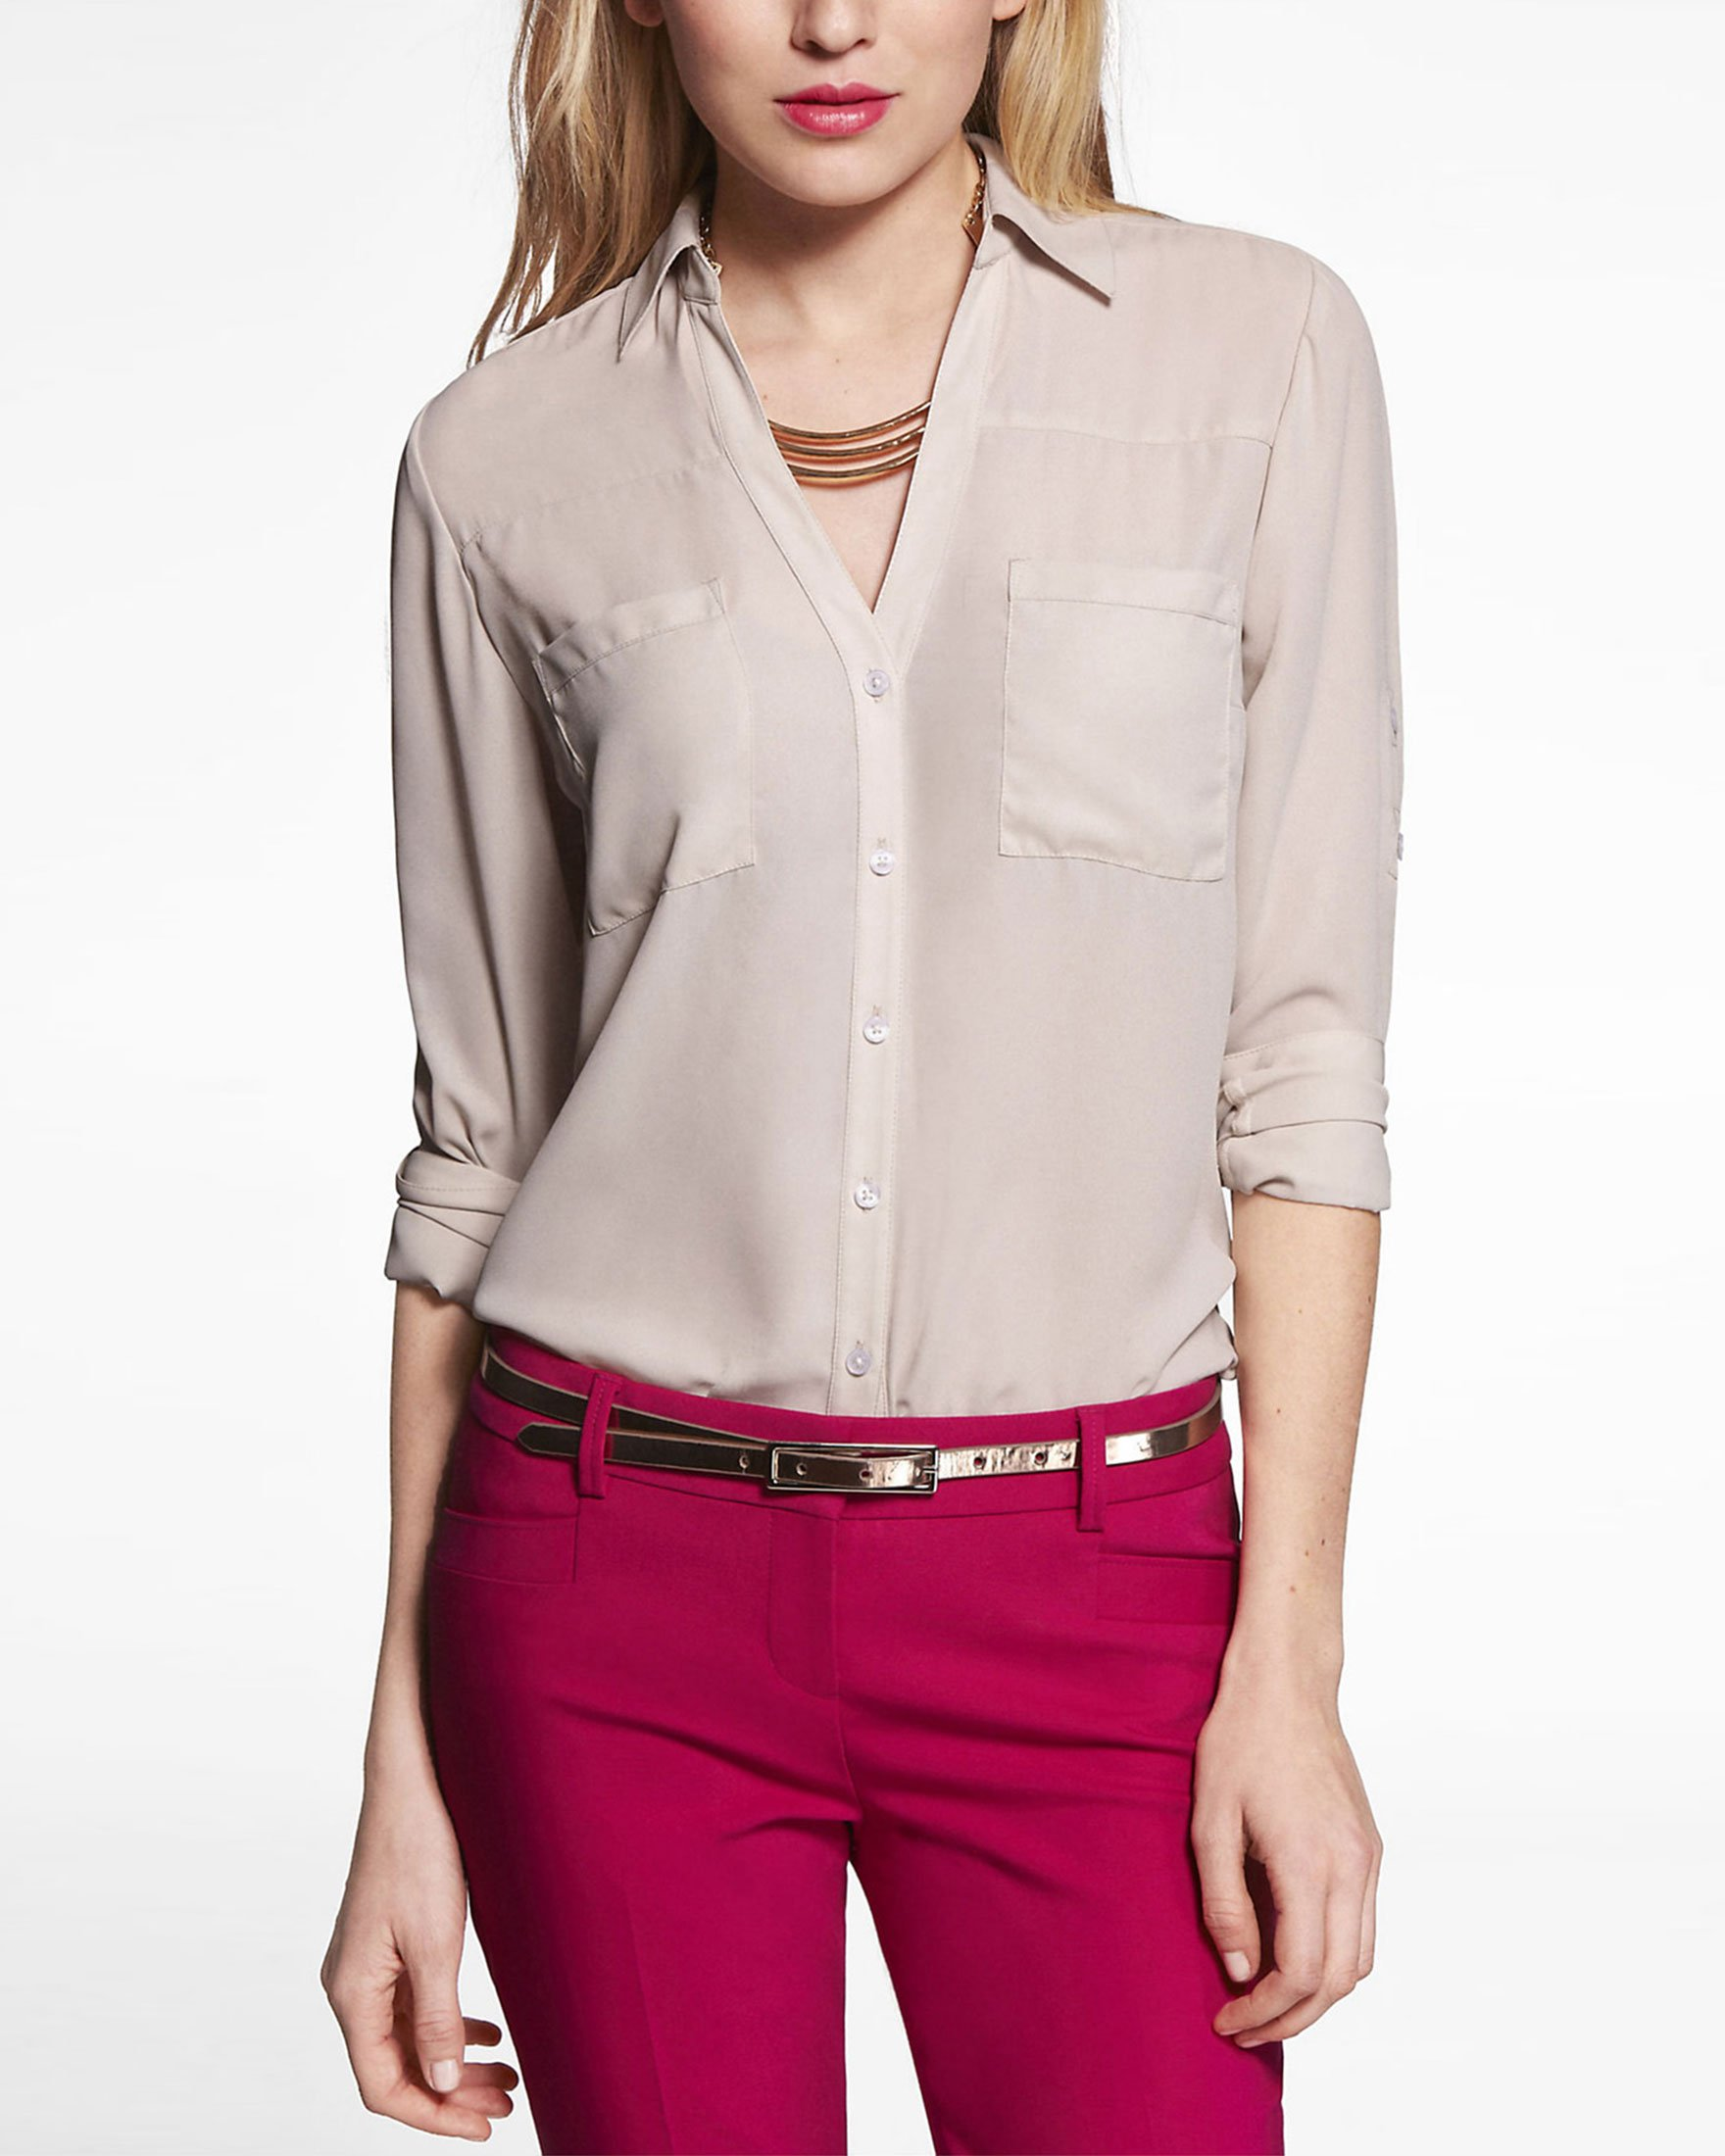 THE PORTOFINO SHIRT